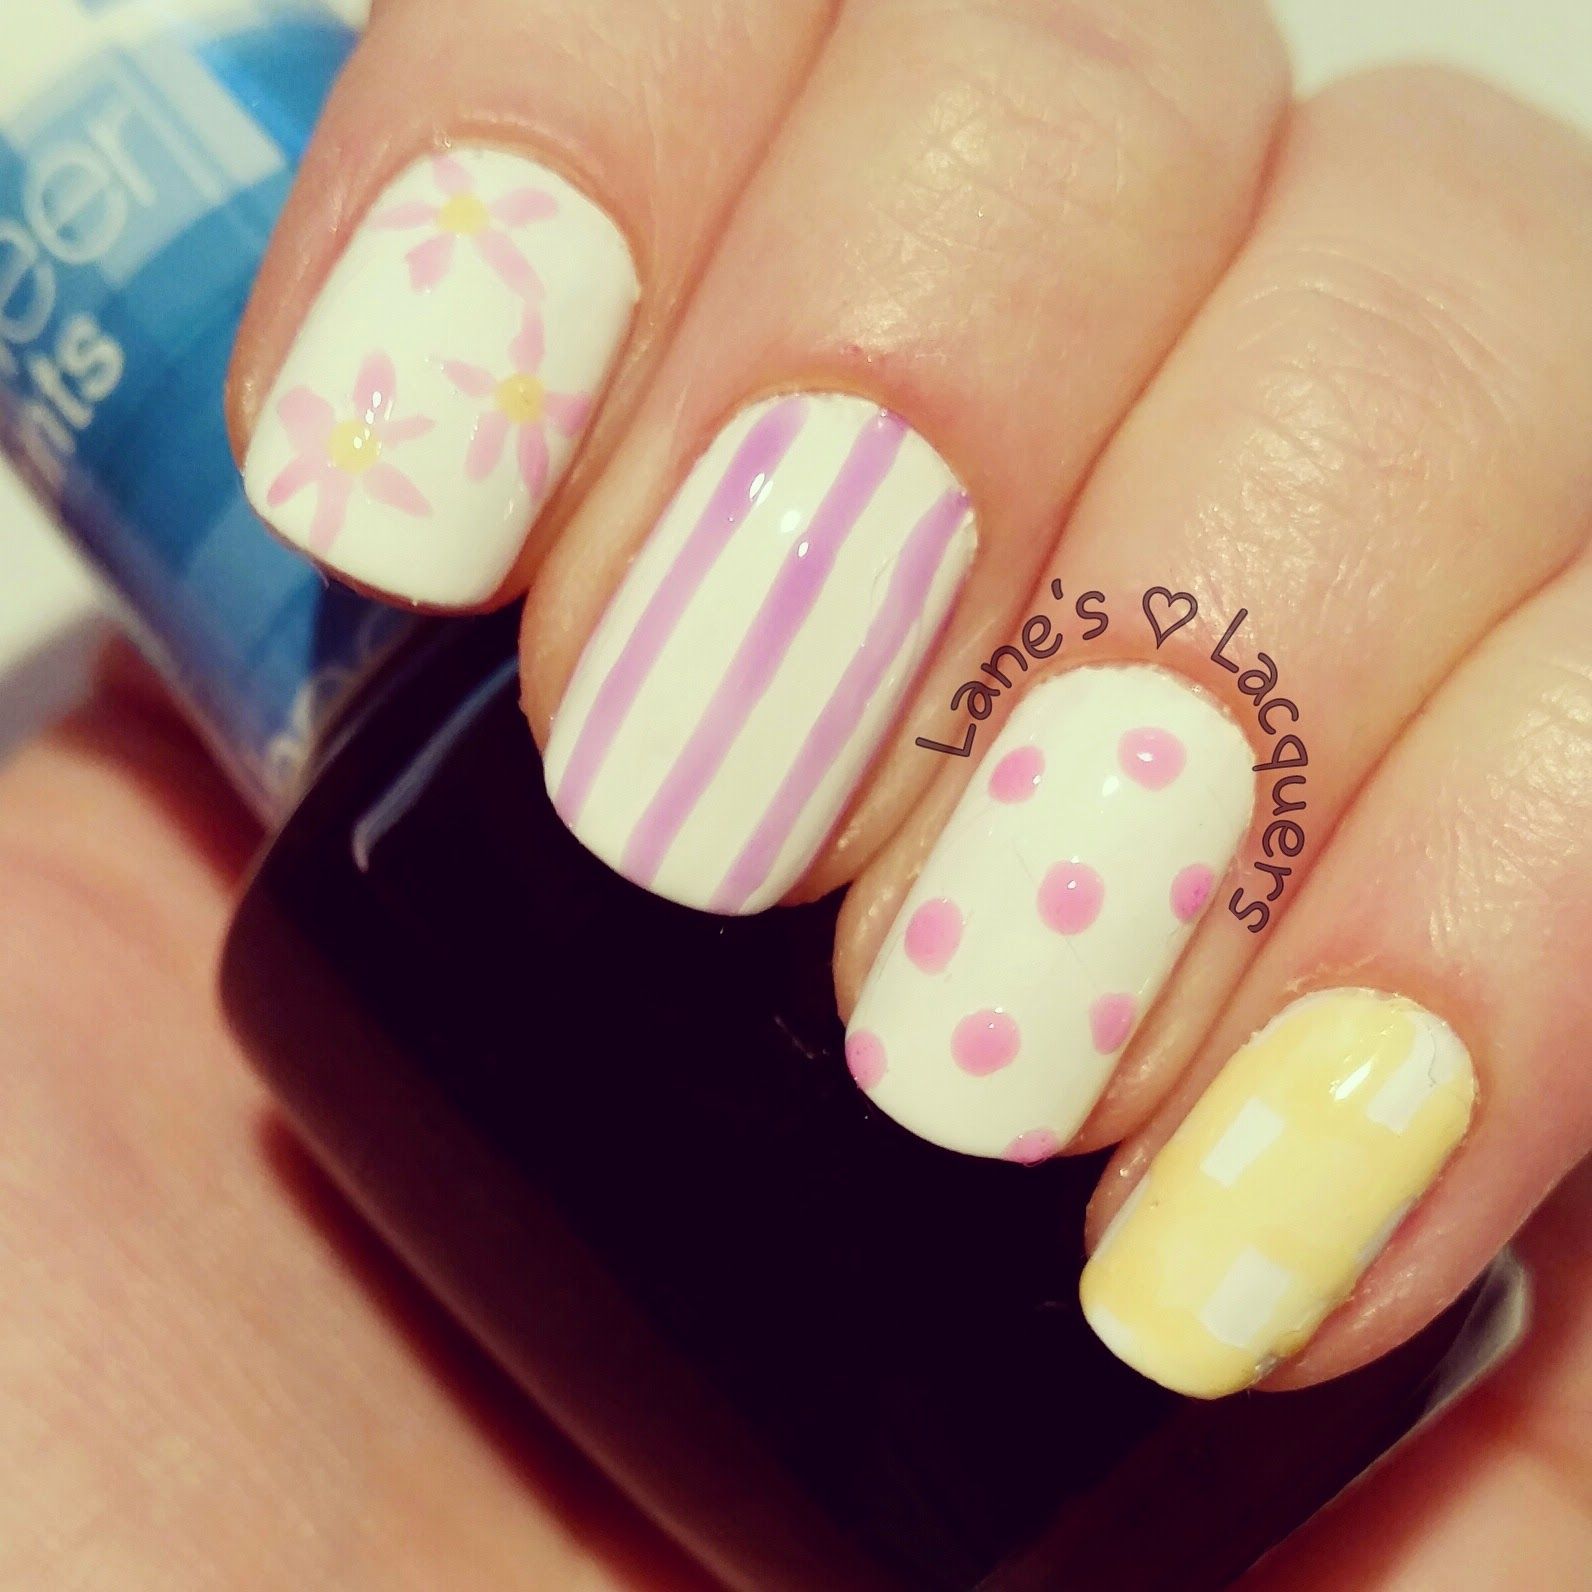 opi-sheer-tints-freehand-spring-pattern-skittle-nail-art (2)